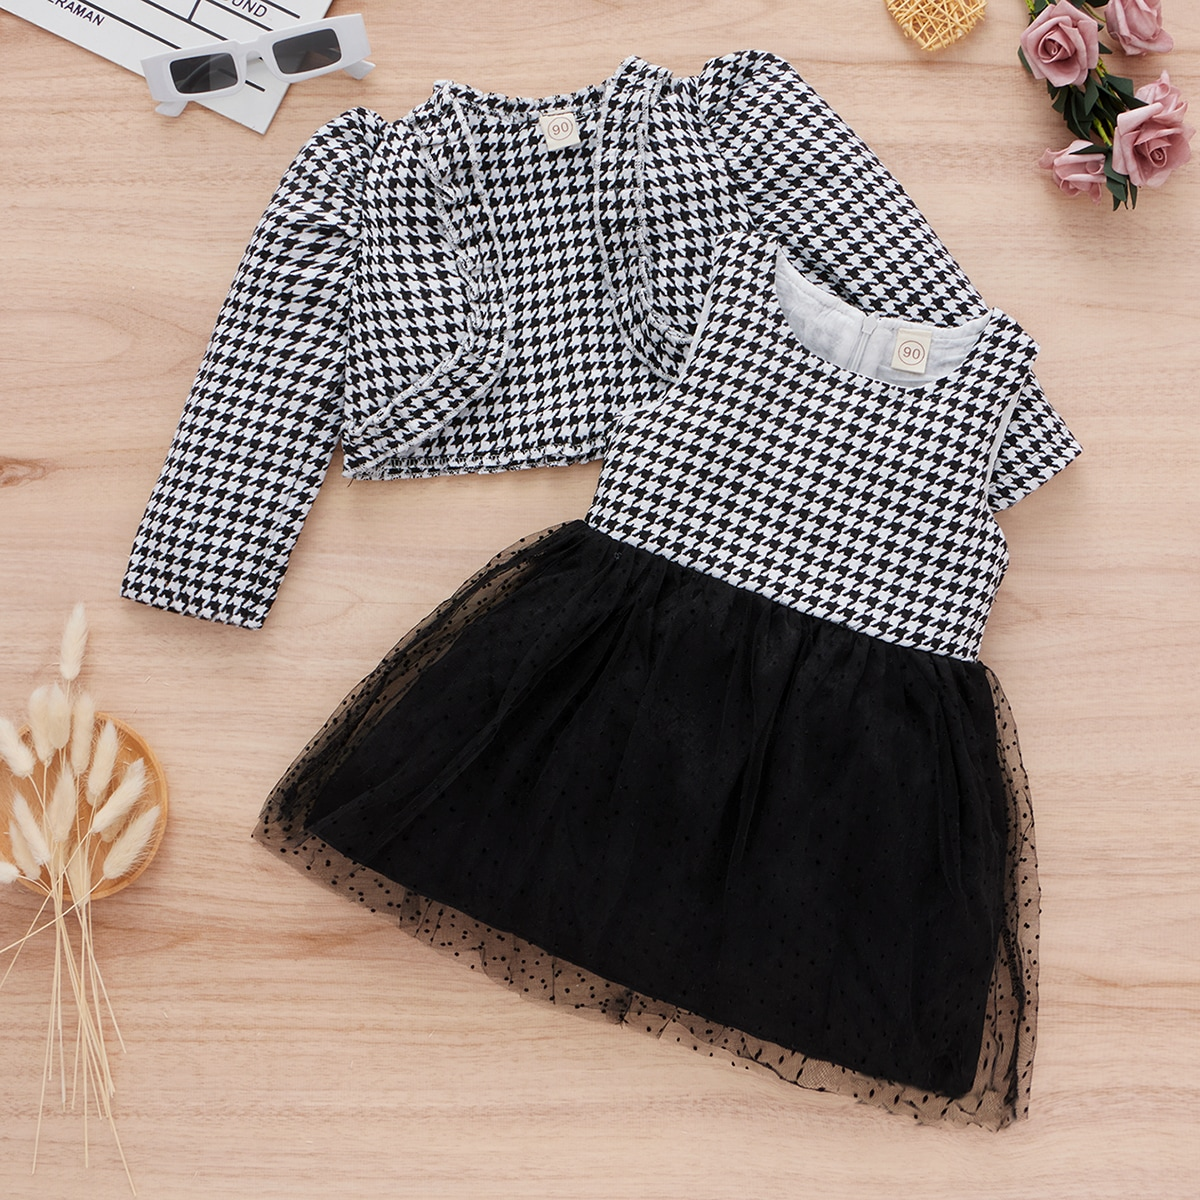 Toddler Girls Houndstooth Puff Sleeve Jacket With Mesh Combo Dress